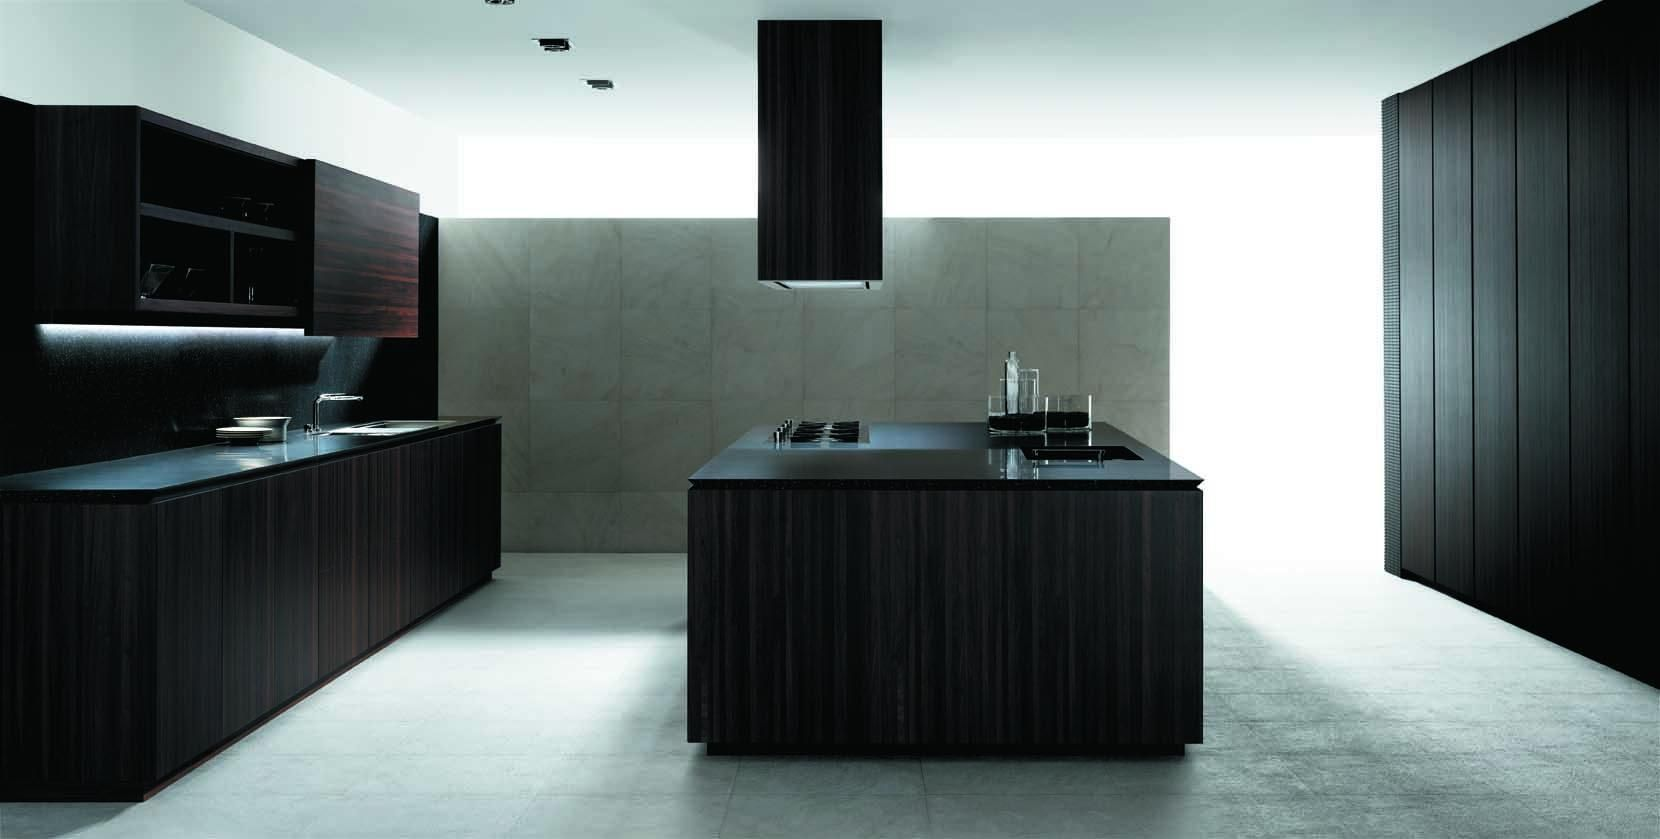 GroBartig Explore Modern Kitchens, Contemporary Kitchens, And More! Schwarze Küche  Mit Kochinsel ...